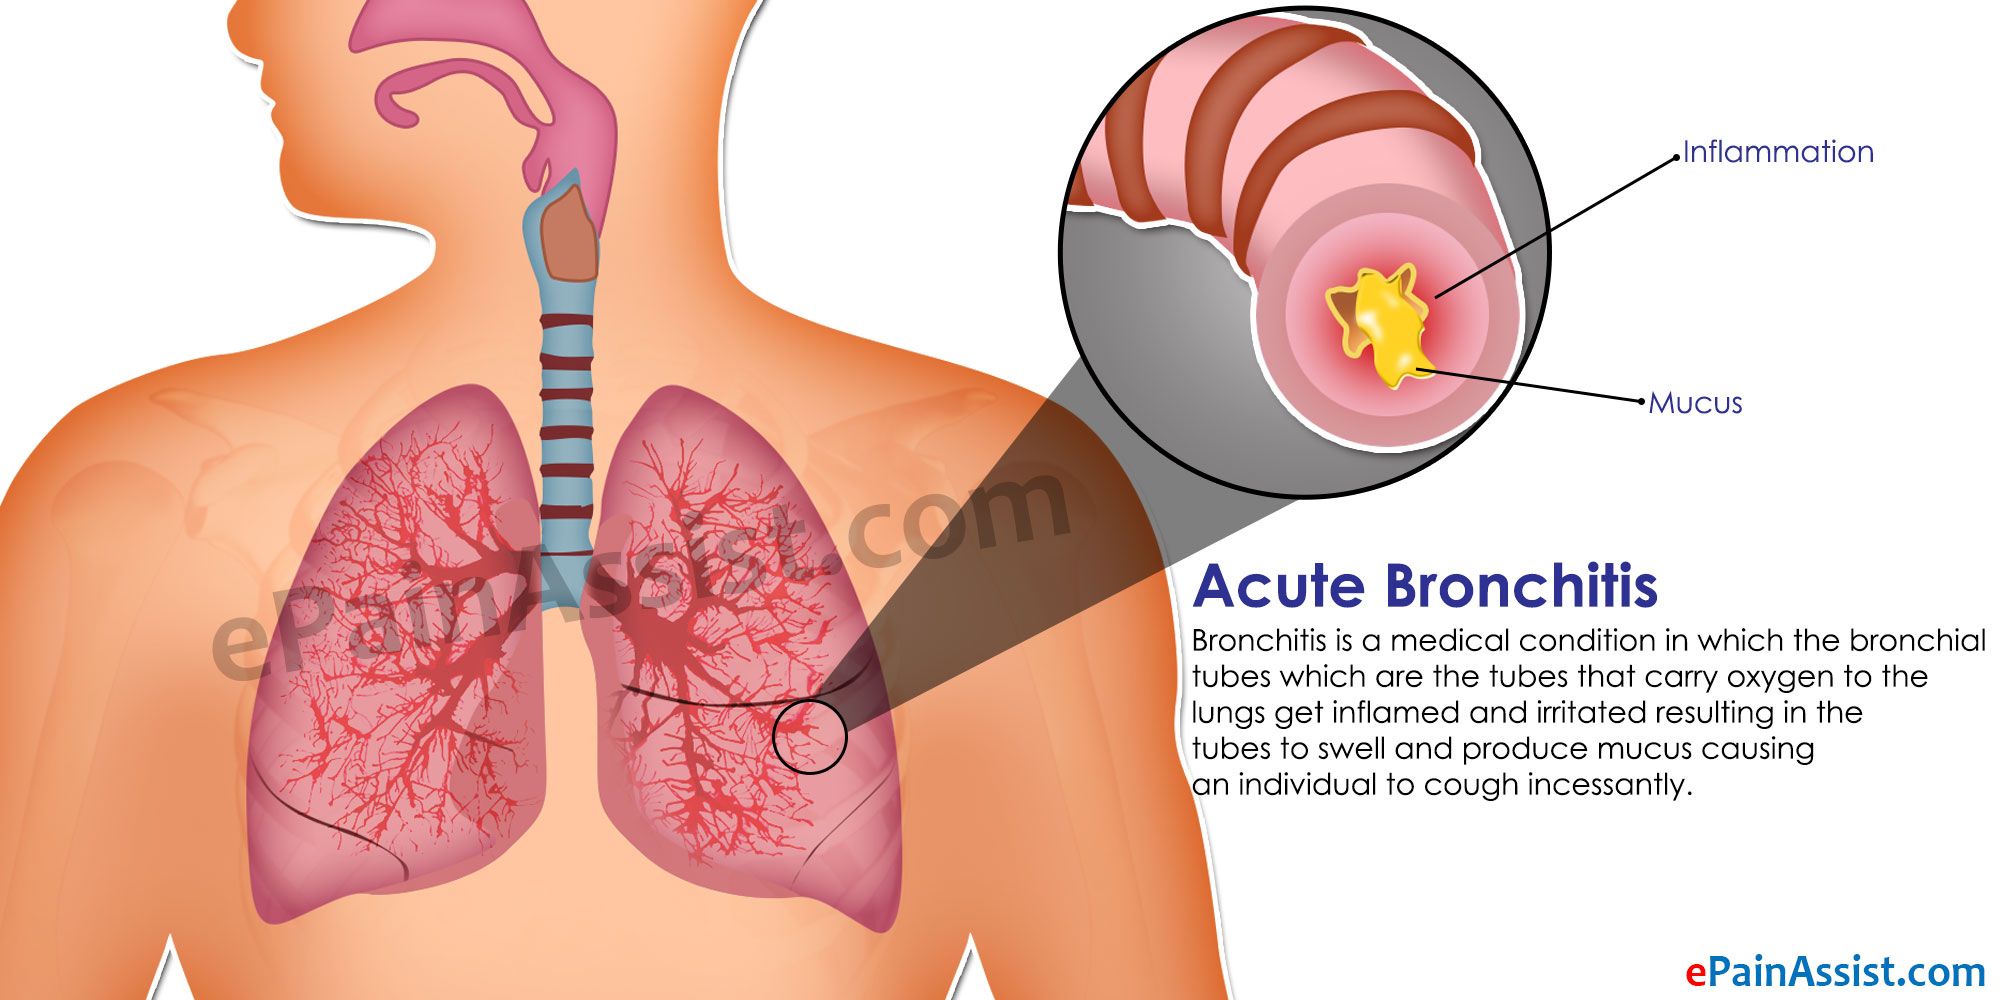 Acute Bronchitis: Treatment, Home Remedies, Prevention, Symptoms